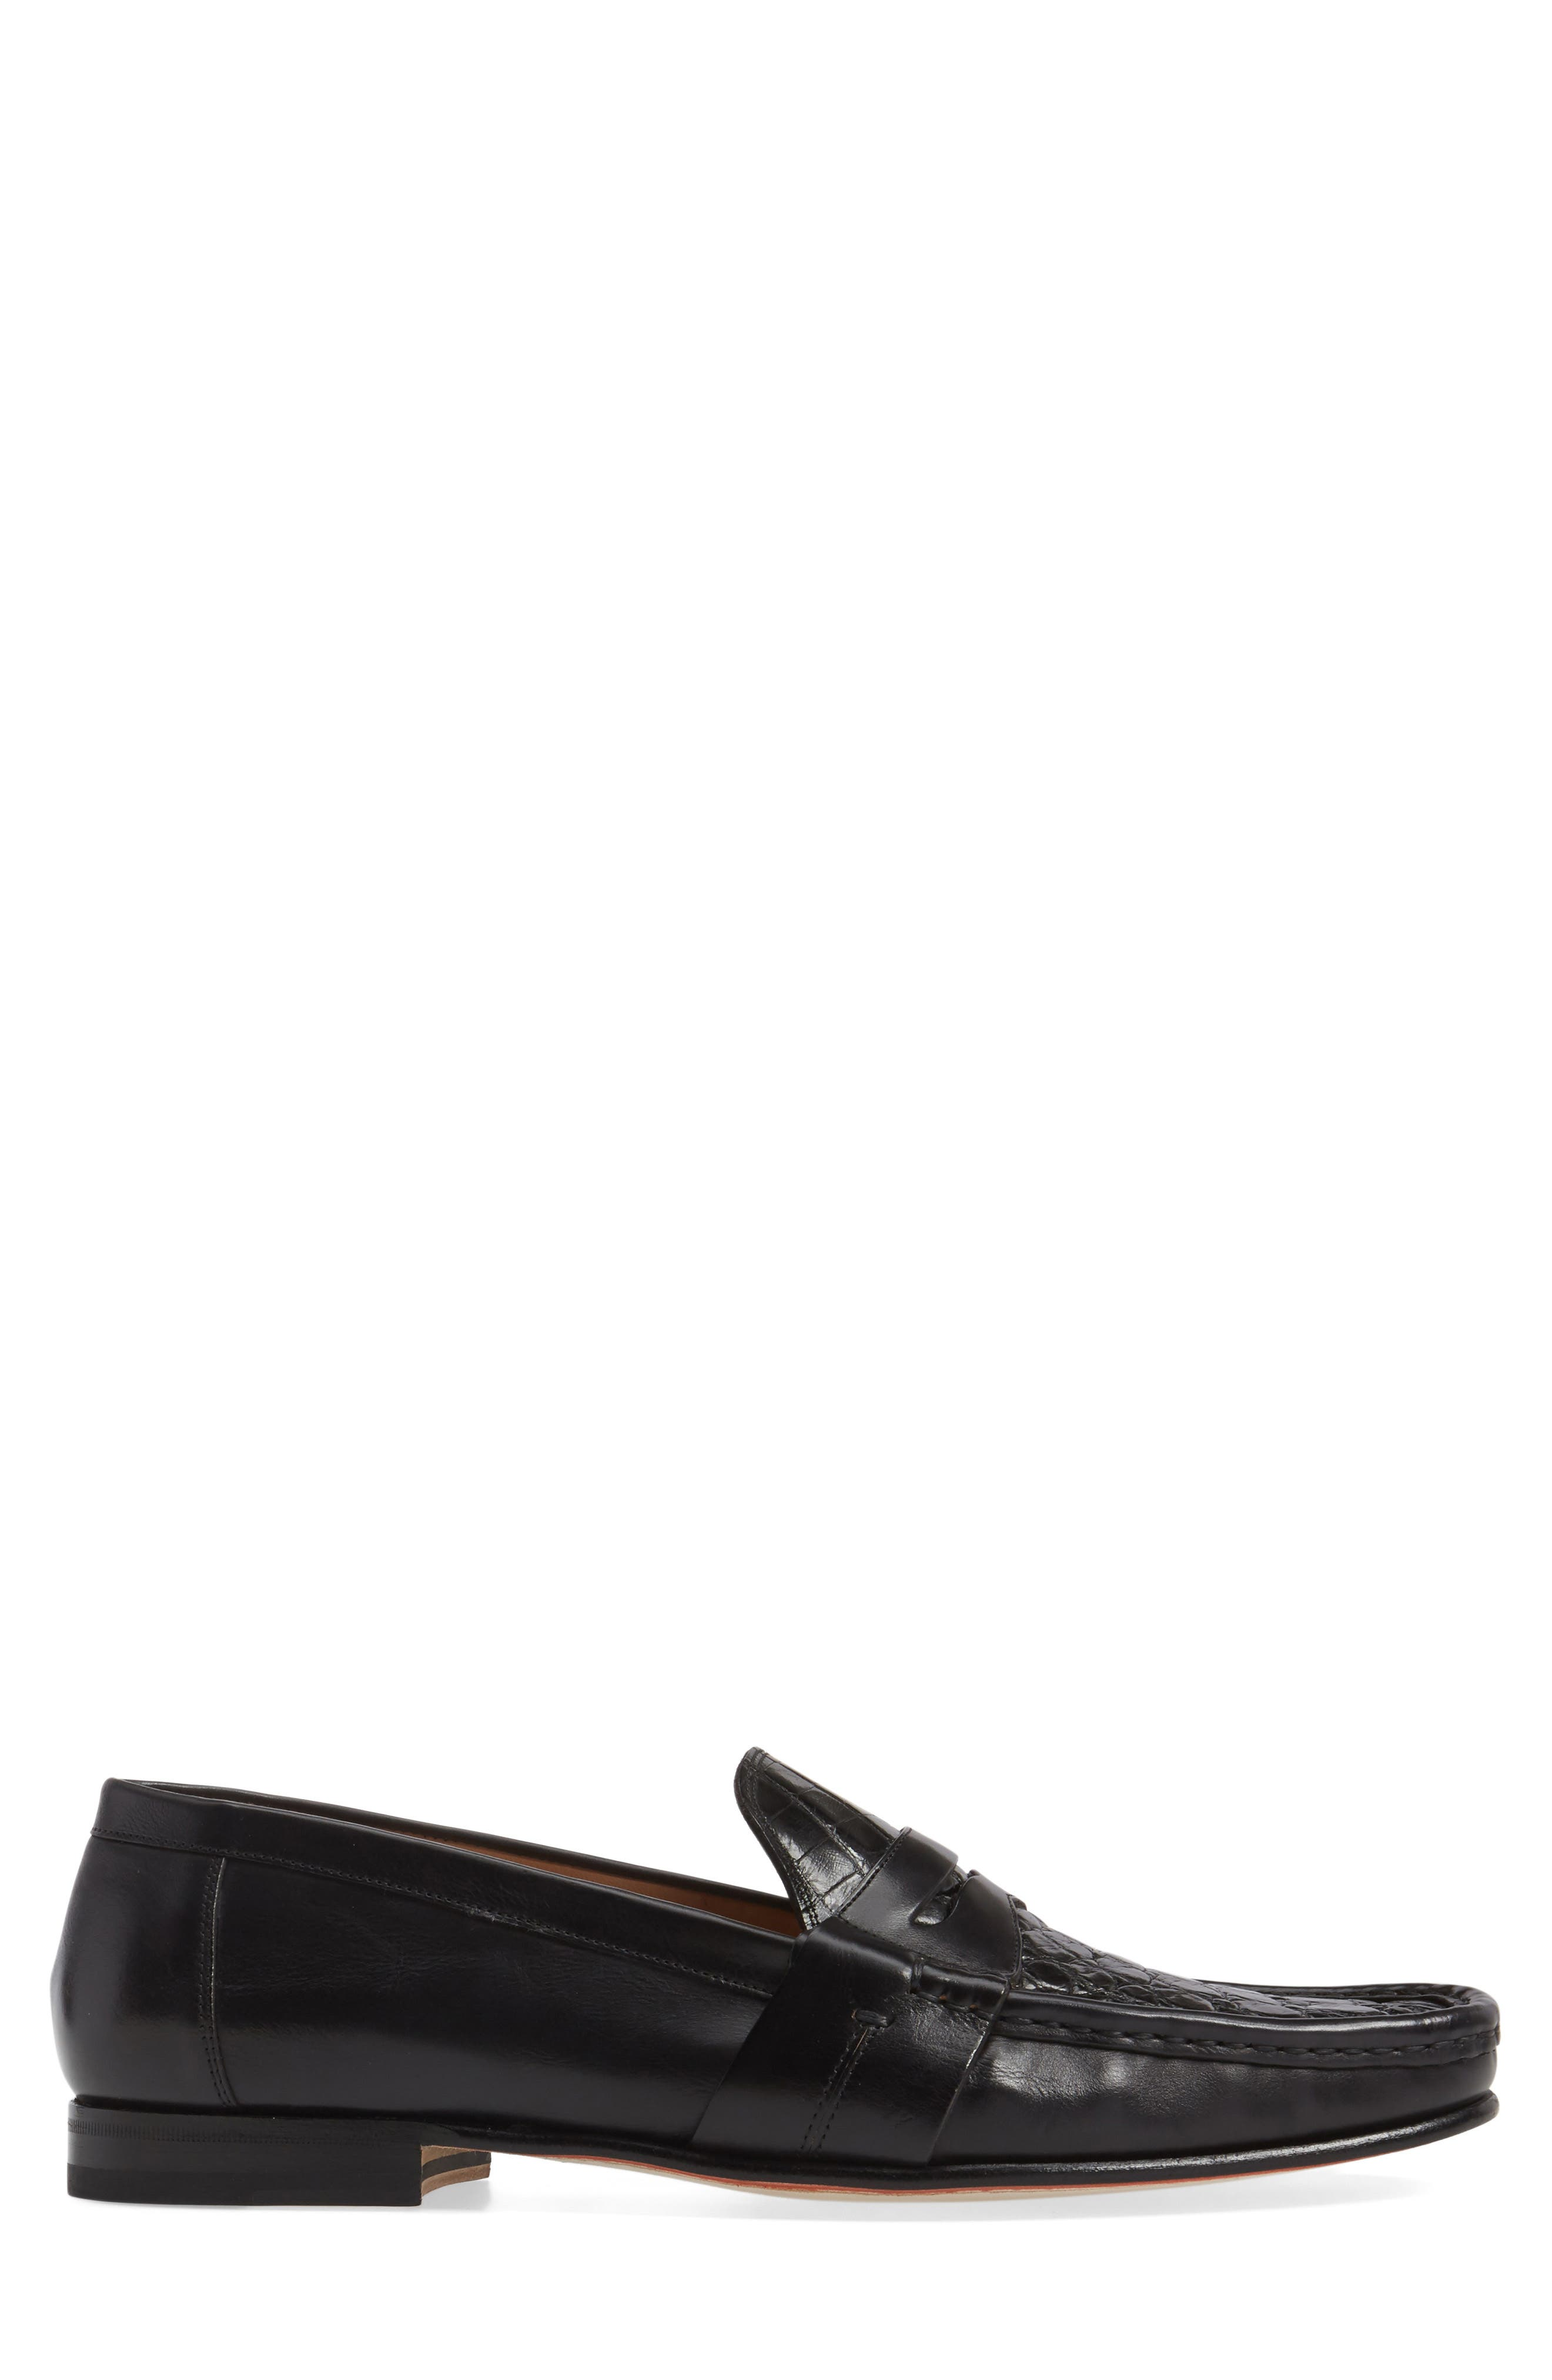 Marconi Penny Loafer,                             Alternate thumbnail 5, color,